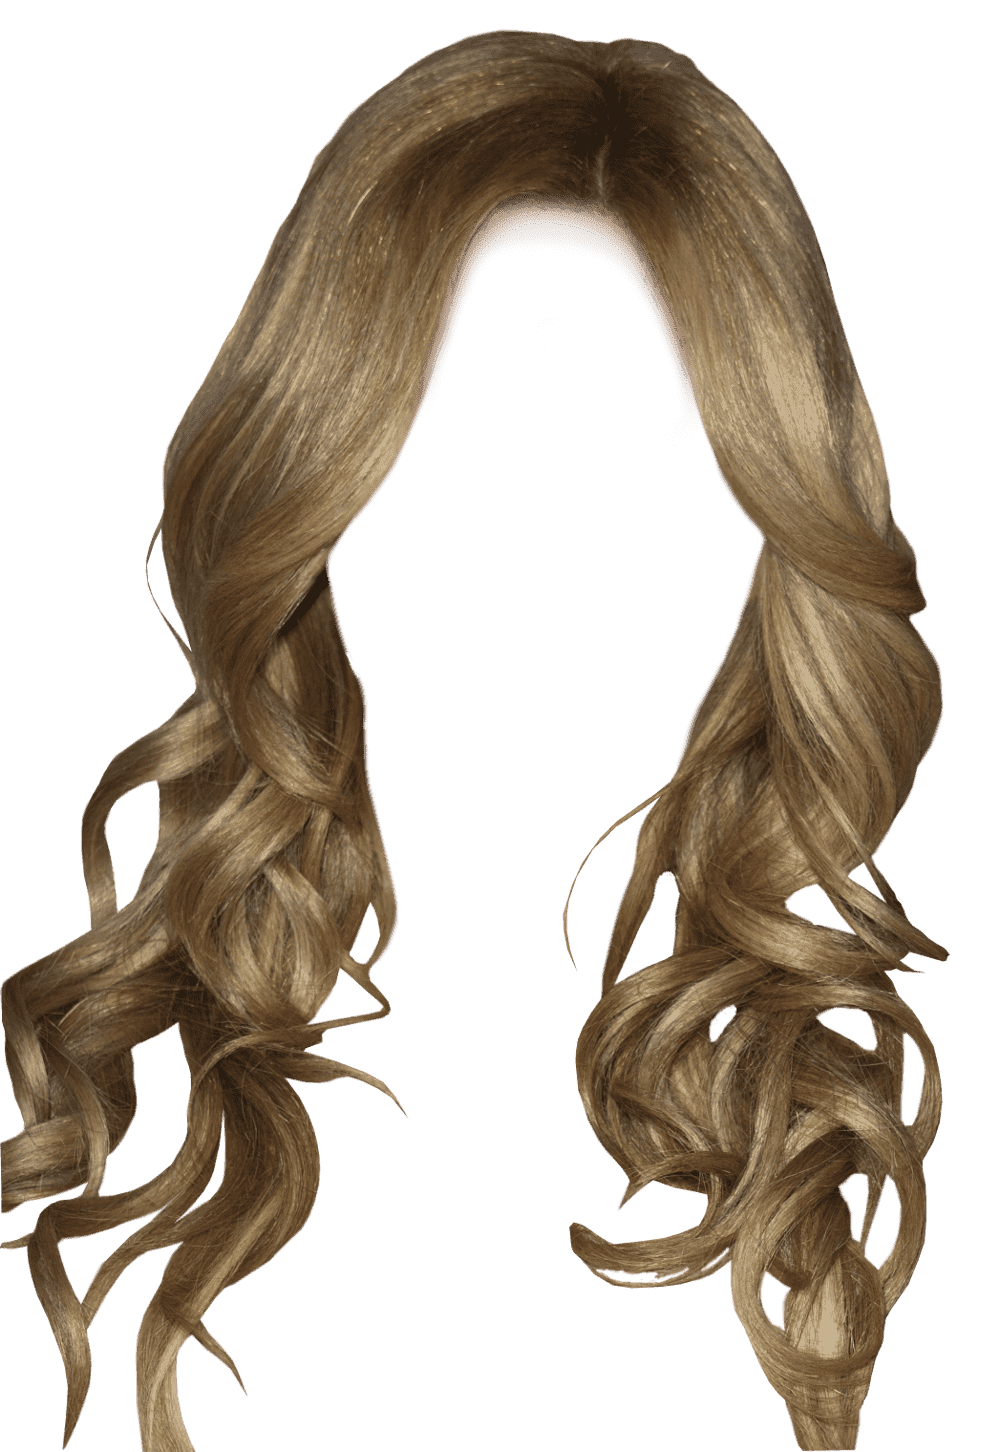 Women s hairstyles clipart png royalty free stock Bun hairstyle clipart transparent | womens hairstyles png royalty free stock